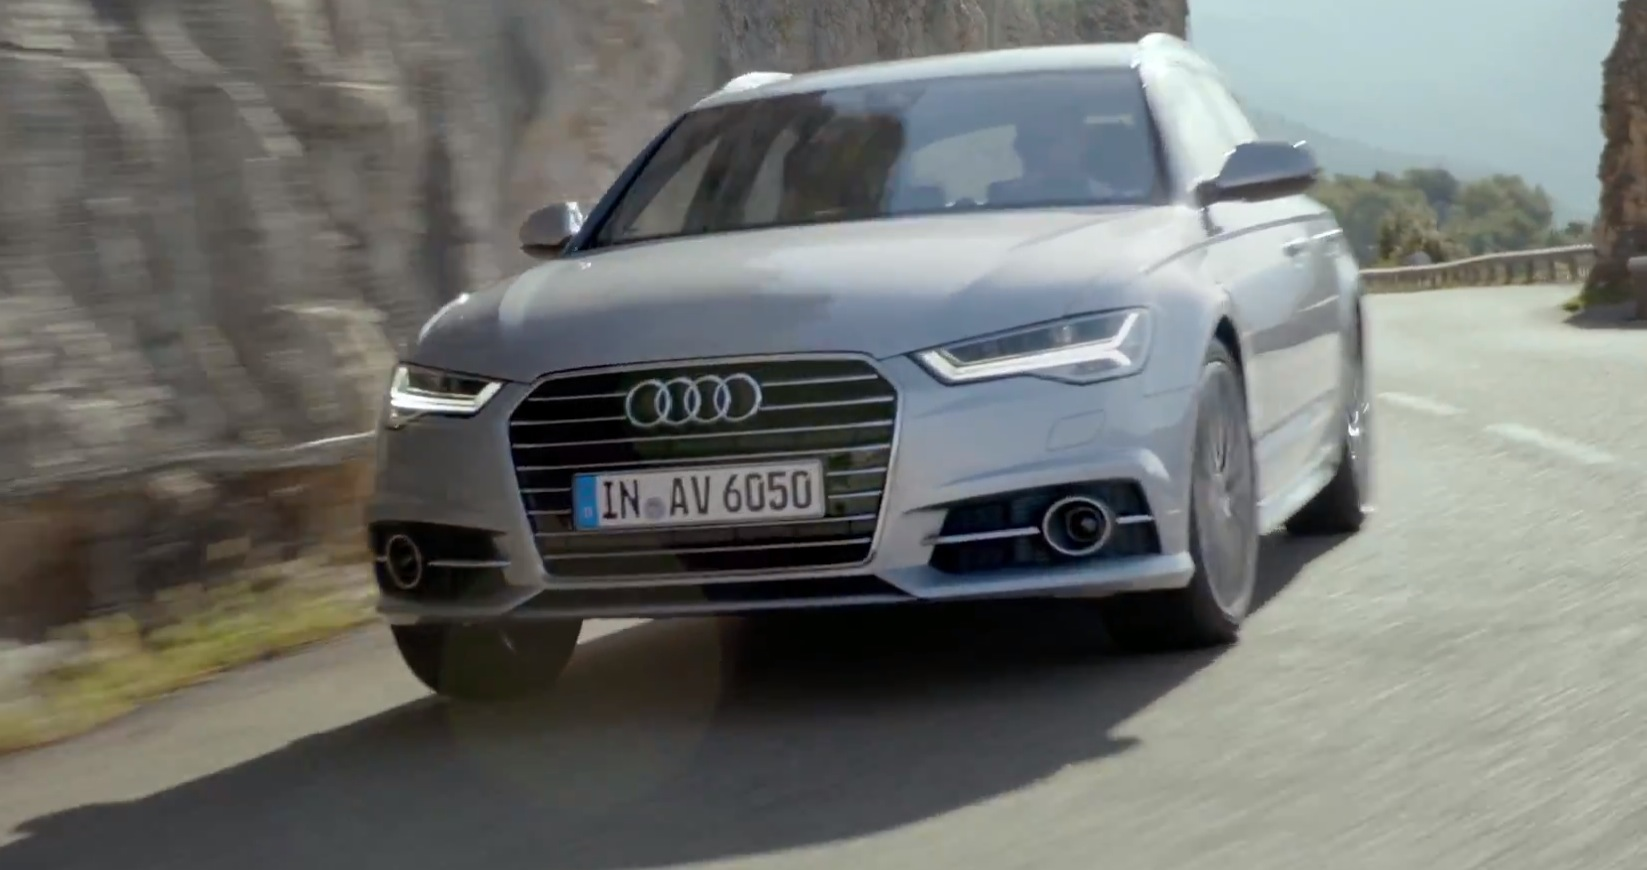 hight resolution of 2015 audi a6 facelift makes video debut in avant ultra form